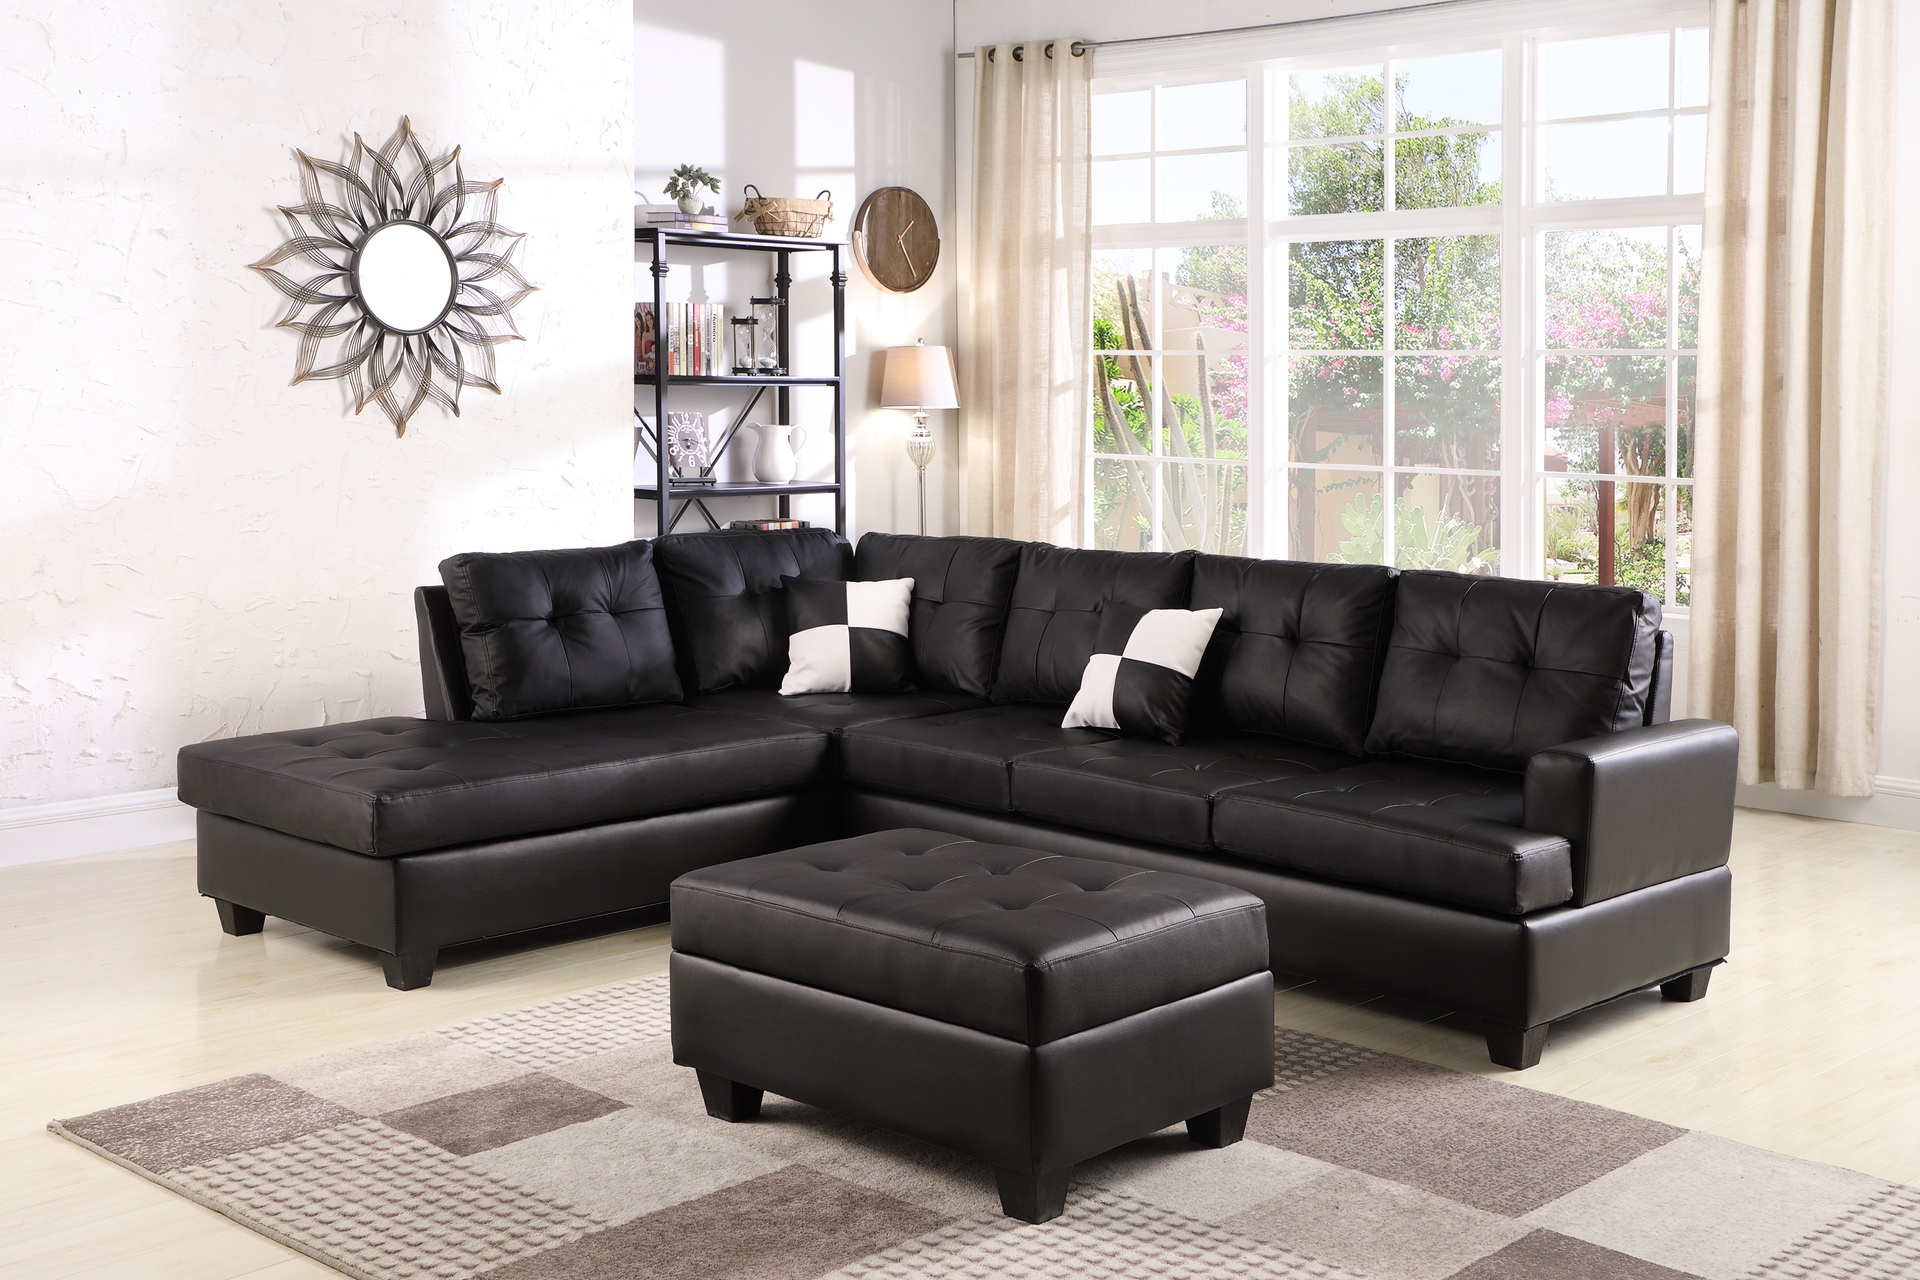 Lounge Suites Ashton 5 Seater Corner Sofa Pu